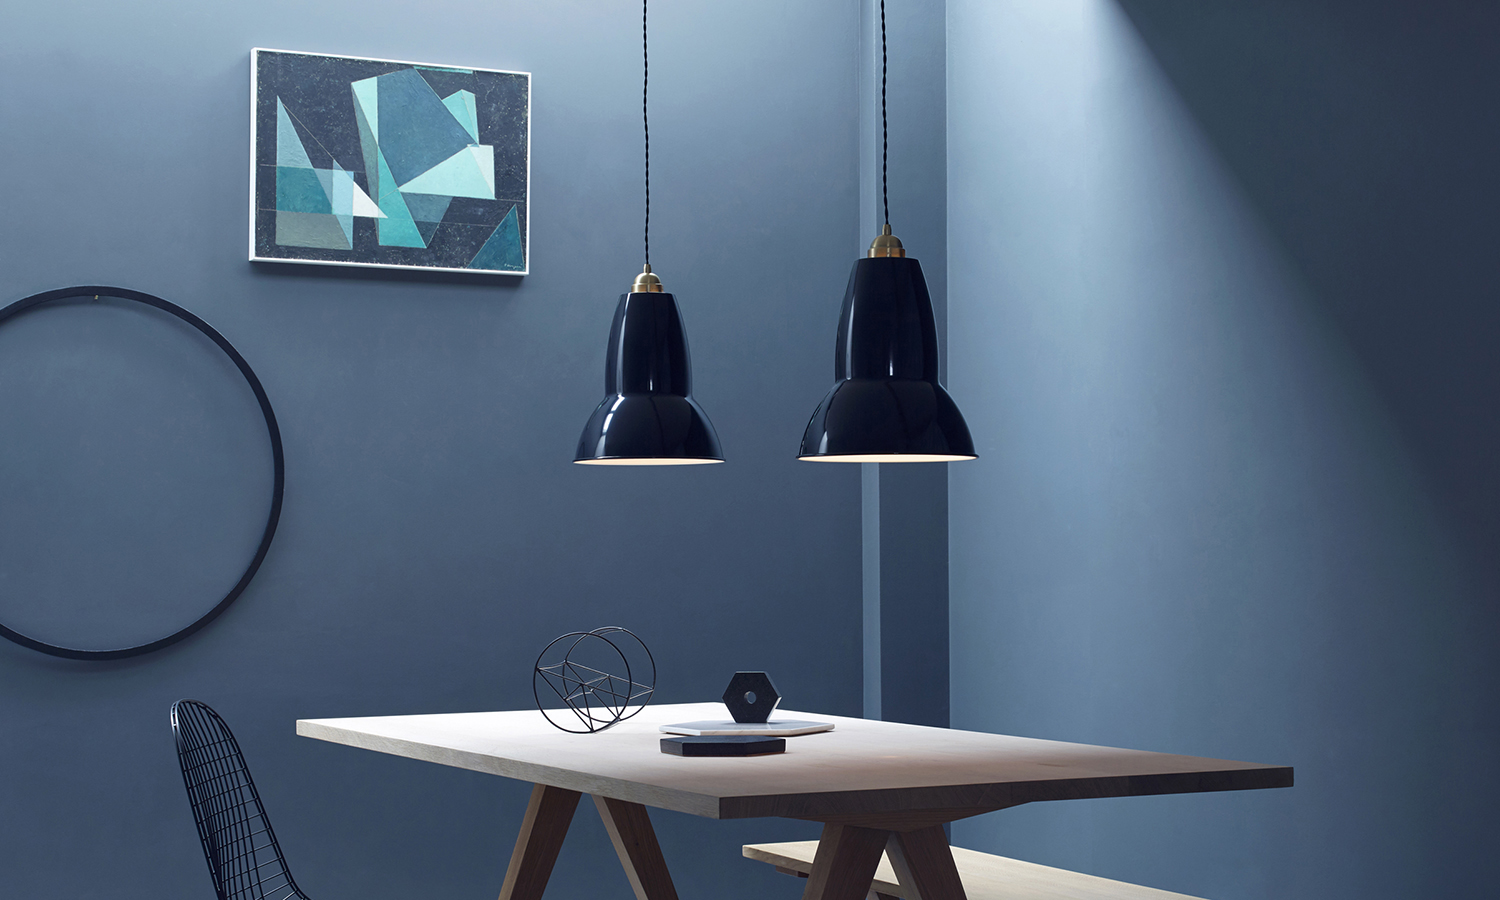 Anglepoise Brass Lights lighting design lighting design The best lighting design stores in NY Anglepoise Brass Lights lighting design